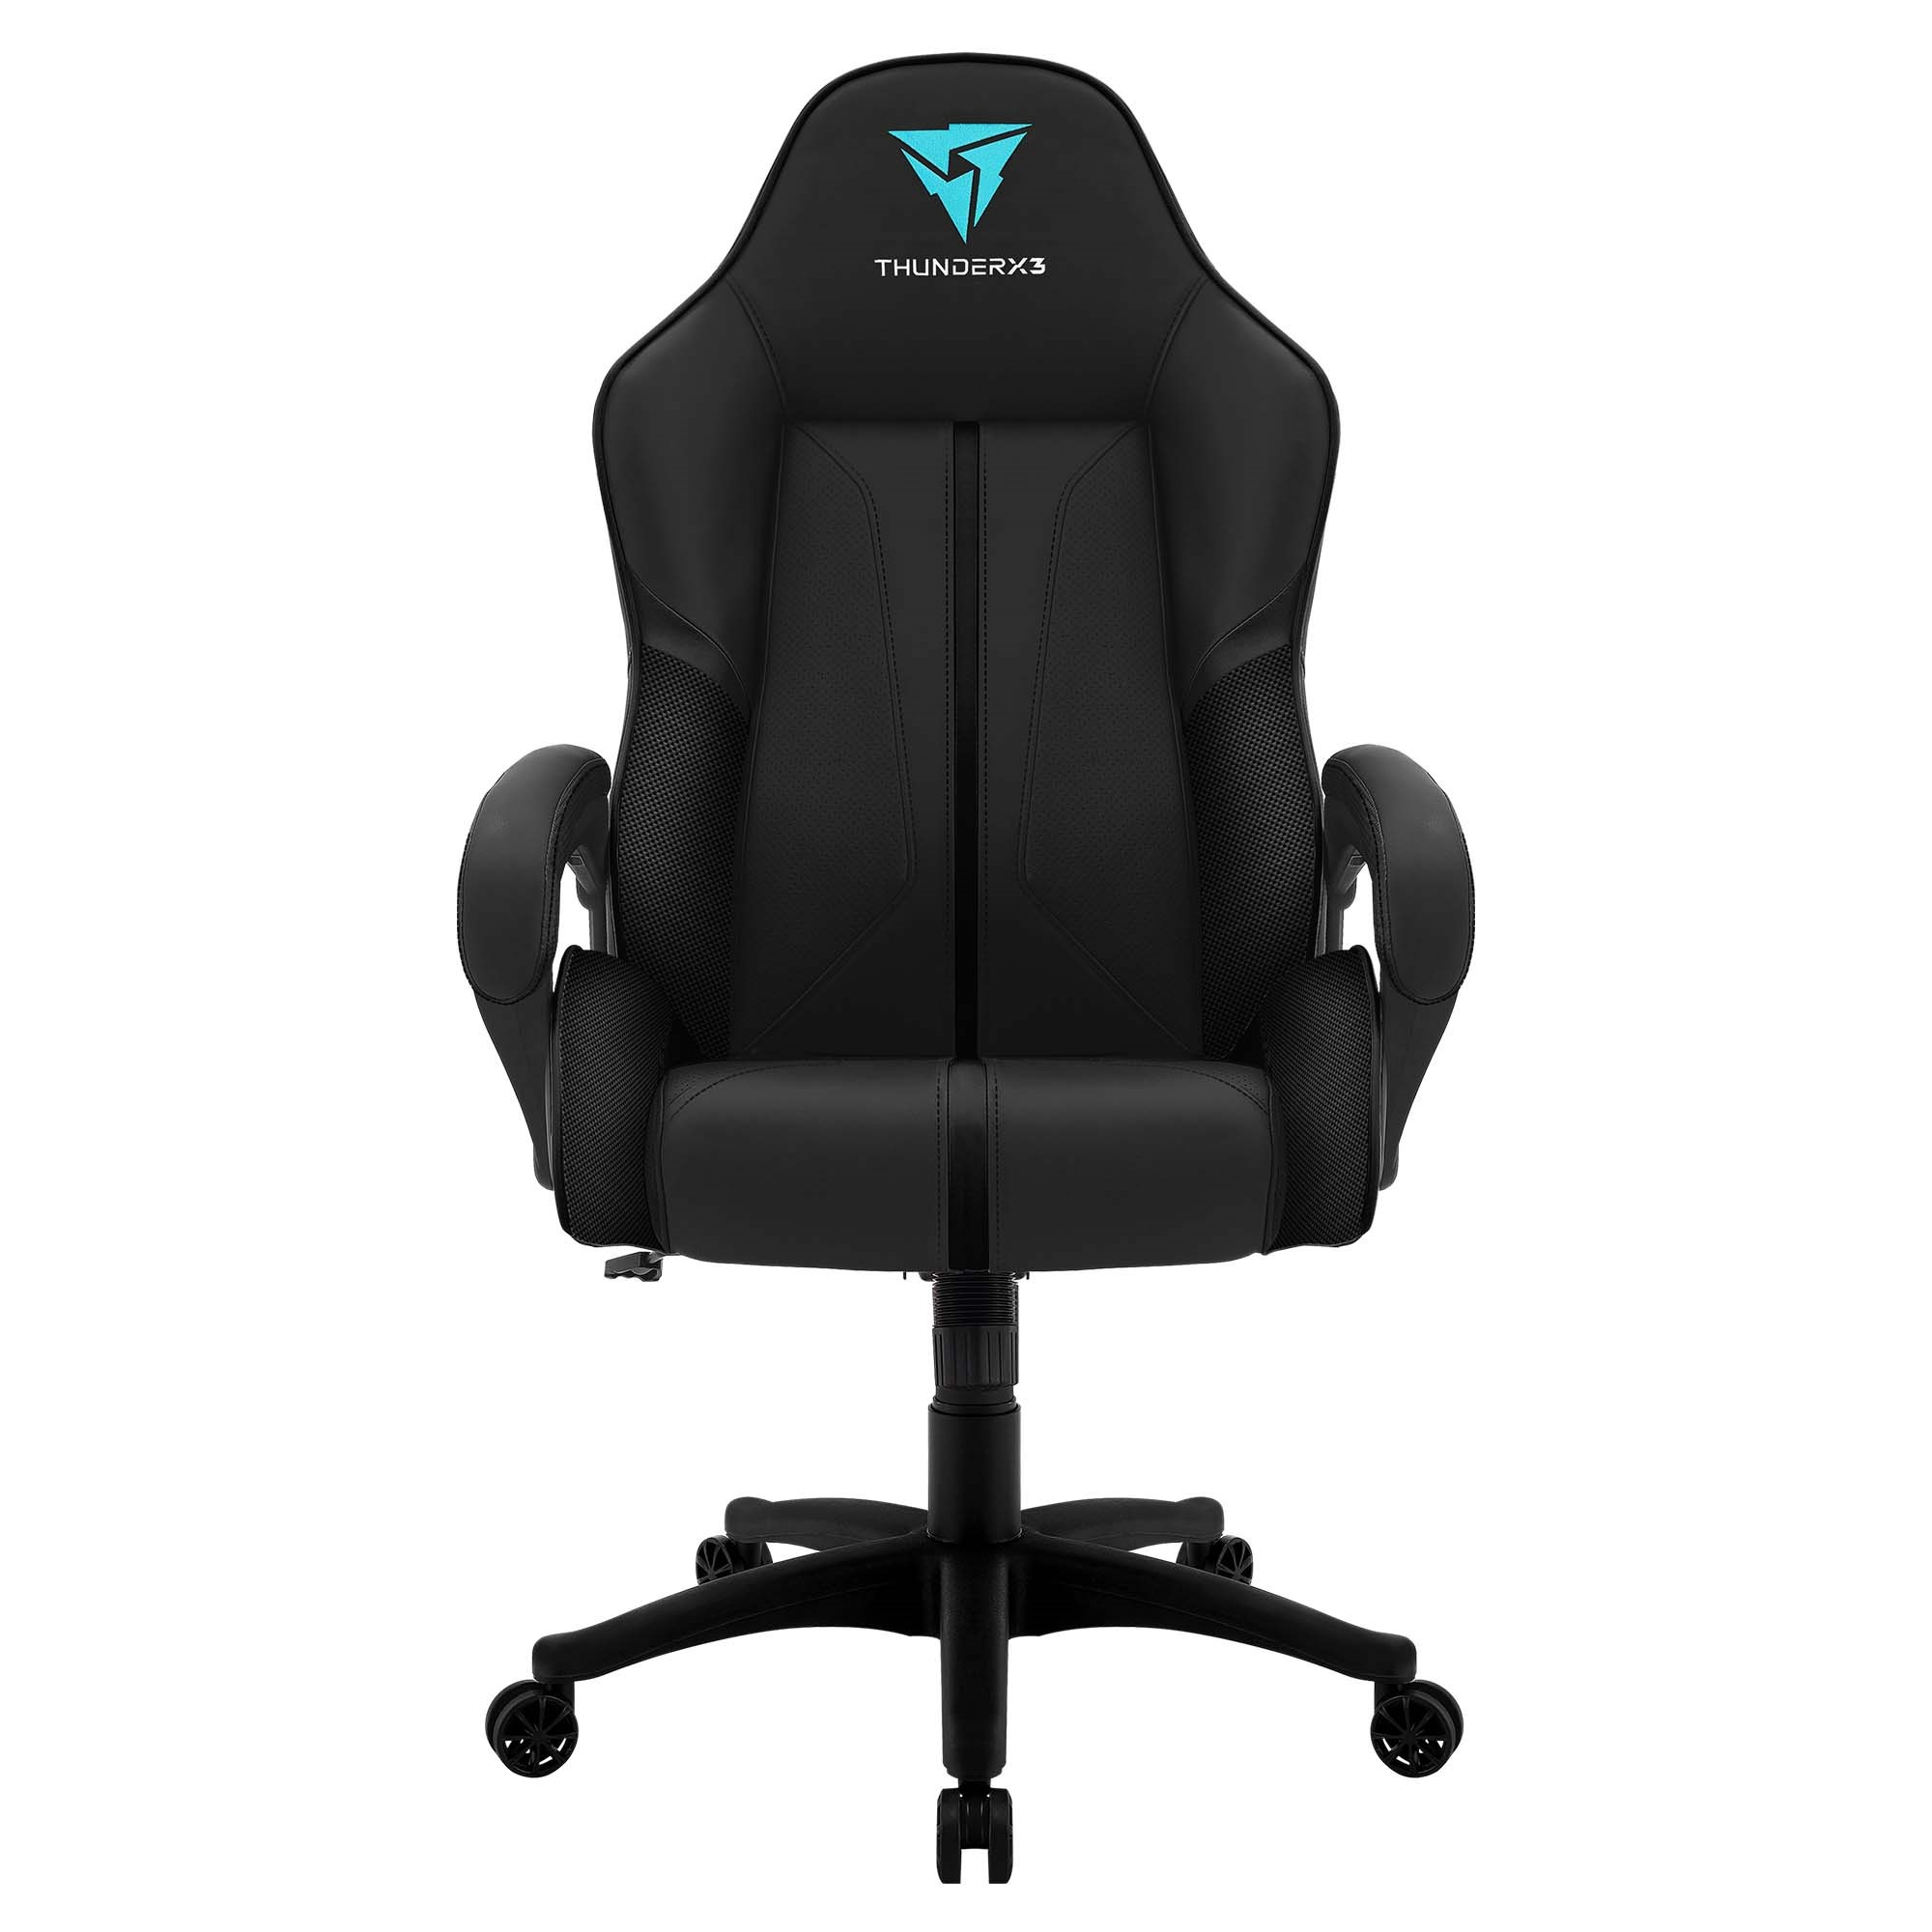 ThunderX3 BC1, Chair Gaming Ergonomic, Synthetic Leather, Technology AIR, Height Adjustable, Black